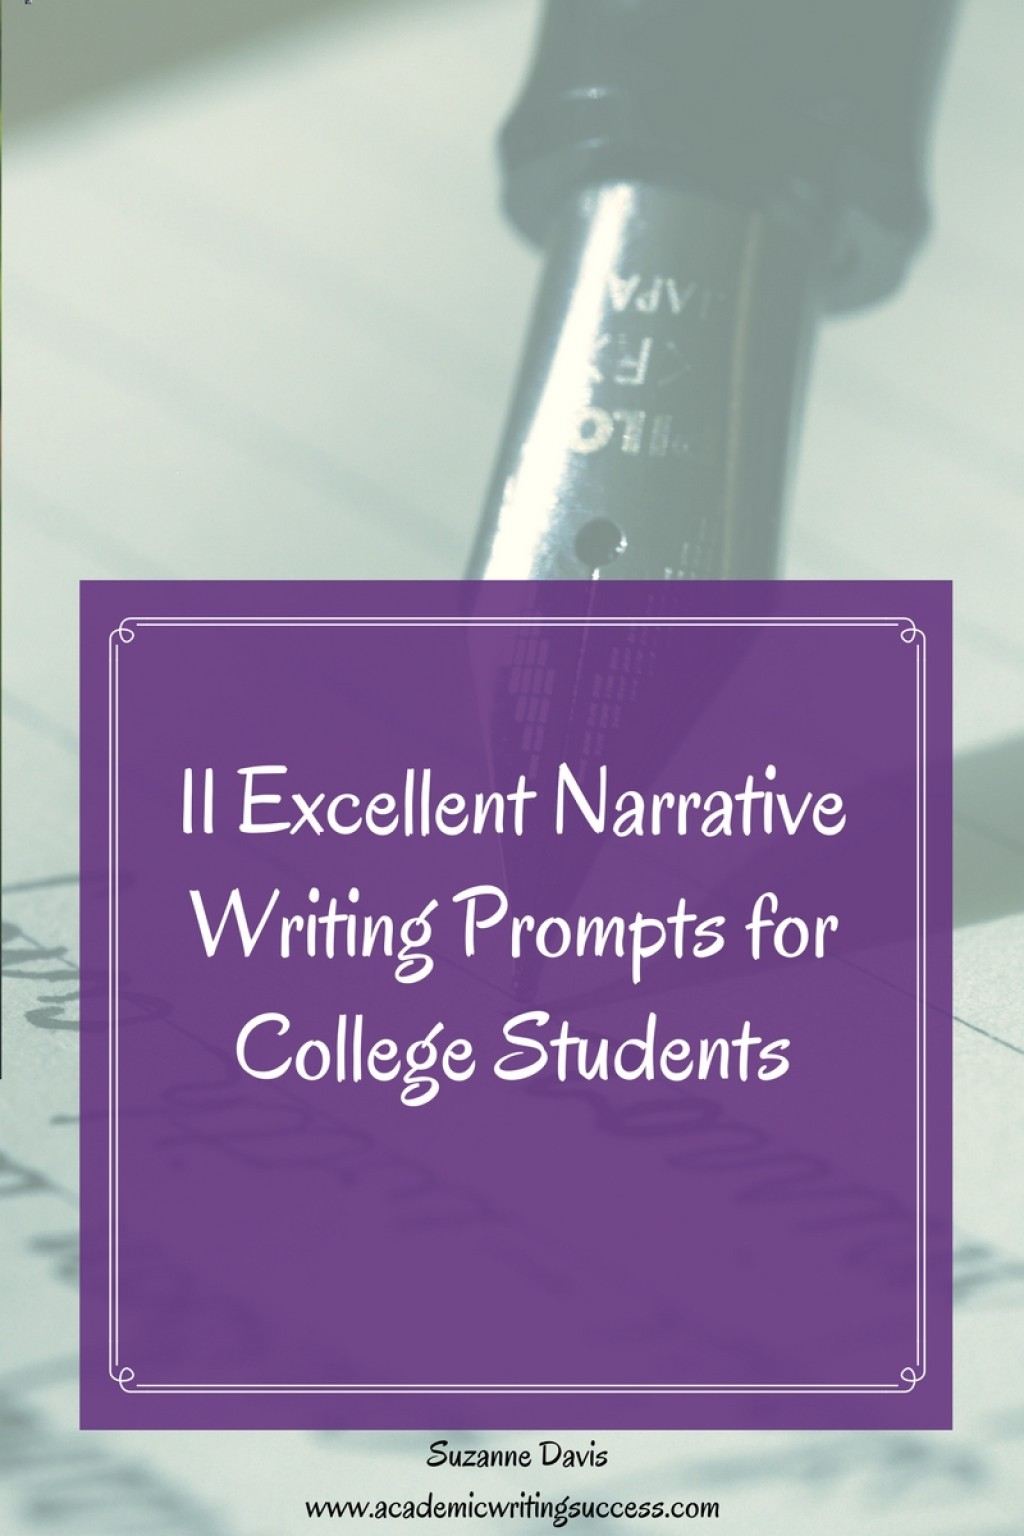 013 Excellent Narrative Writing Prompts For College Students Personal Essay Beautiful 3rd Grade Ks1 Ks2 Large